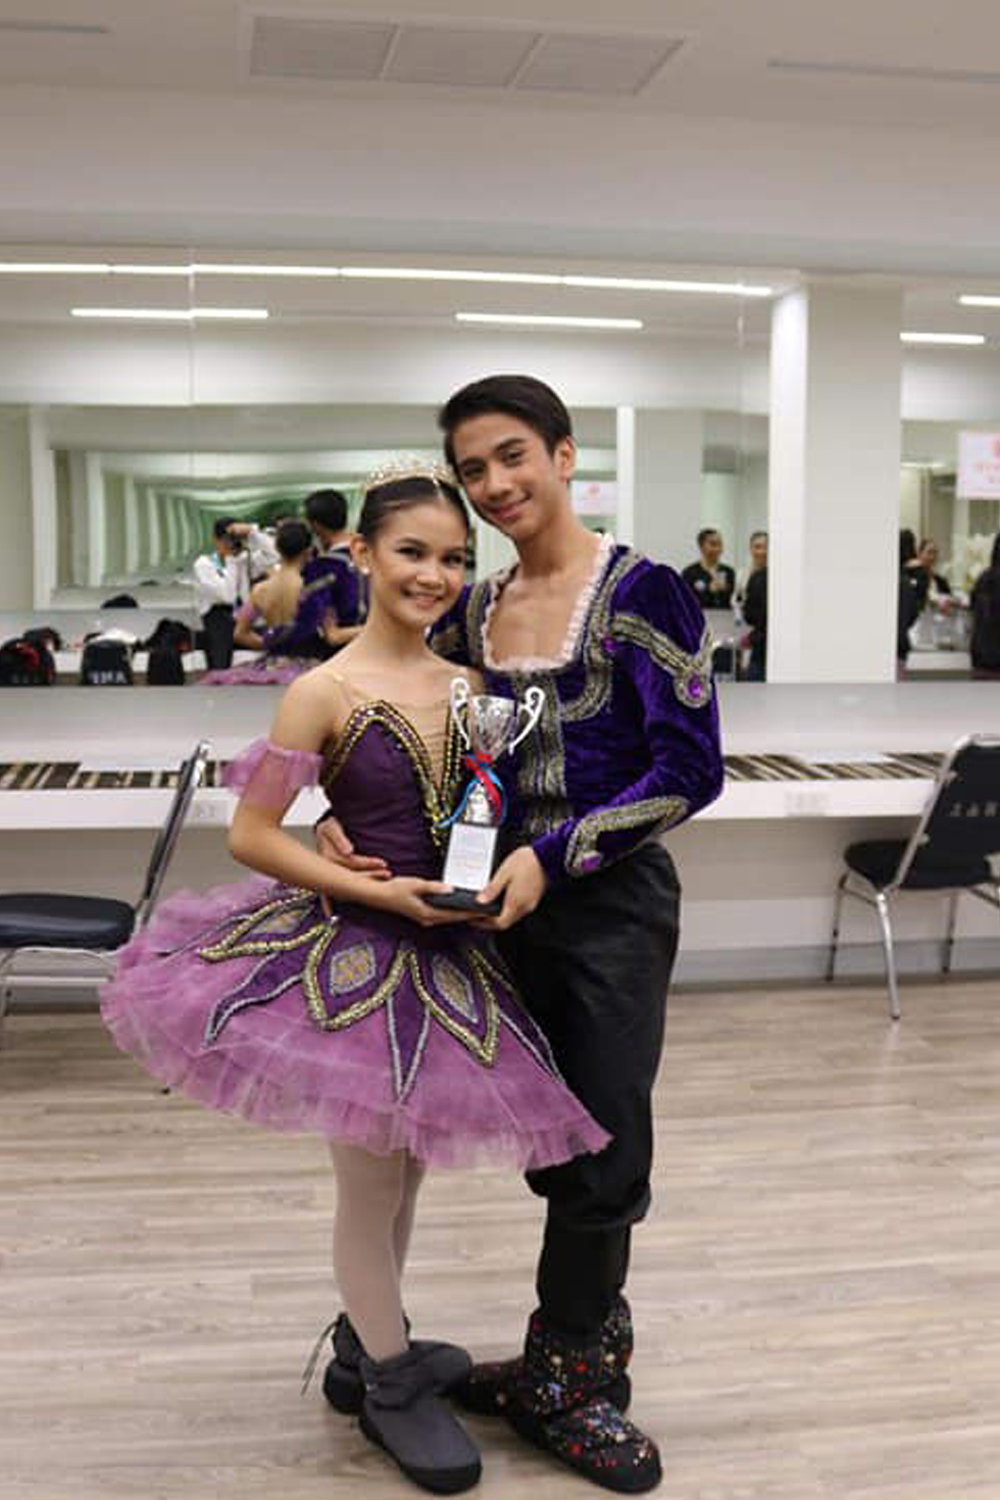 Shaira Comeros and Brian Sevilla won the bronze prize at the 2018 Australian Teachers of Dance (ATOD) International Dance Competition.